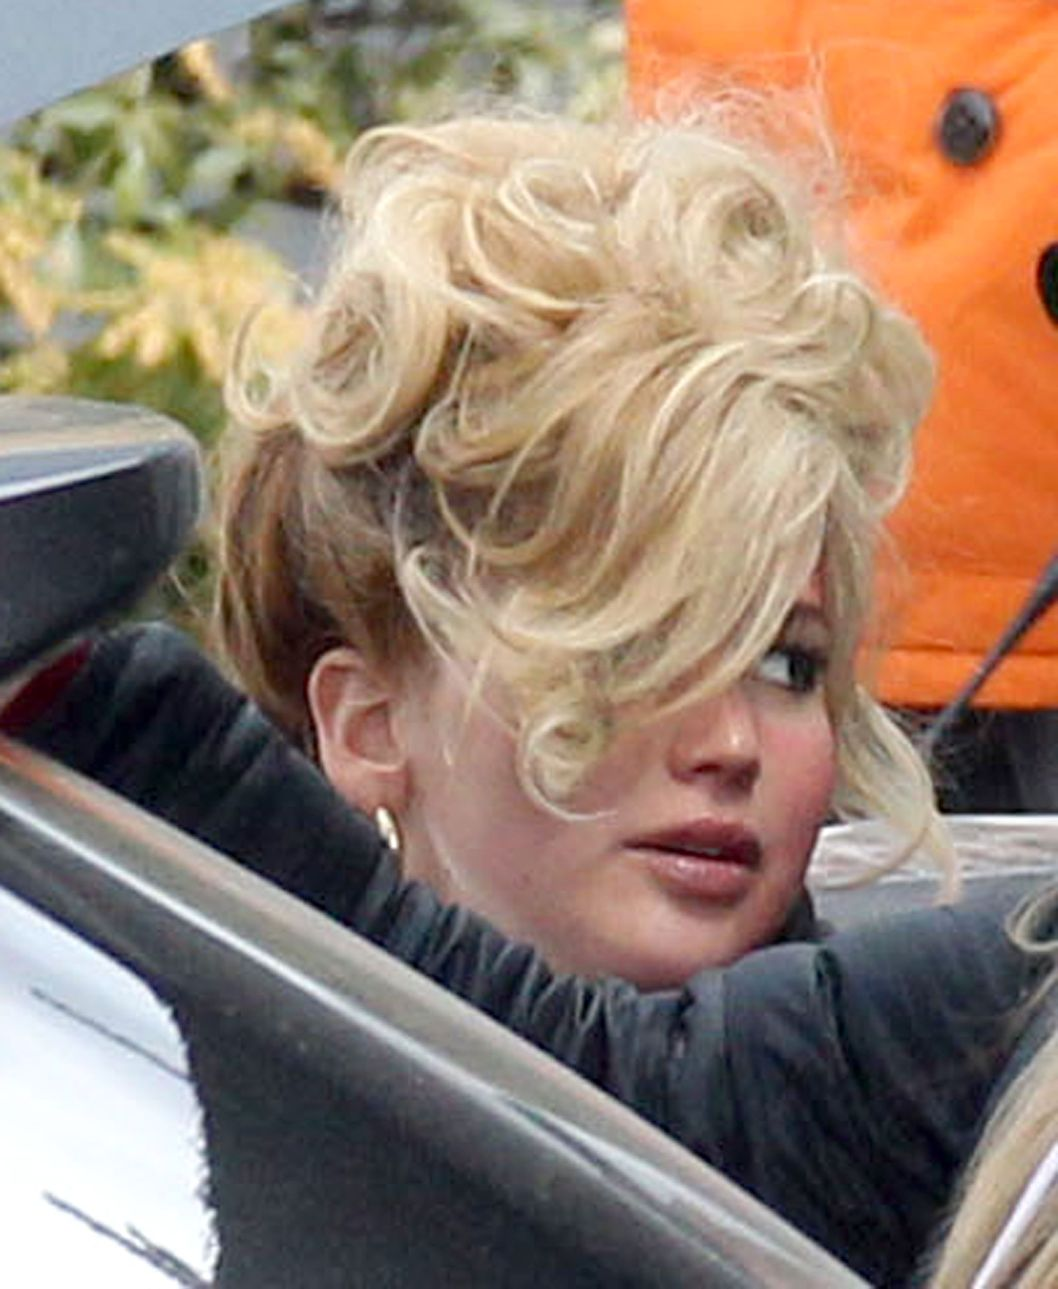 51048011 Oscar winning actress Jennifer Lawrence is spotted on the set of the Untitled David O. Russell film in Boston, Massachusetts on March 25, 2013. FameFlynet, Inc - Beverly Hills, CA, USA - +1 (818) 307-4813